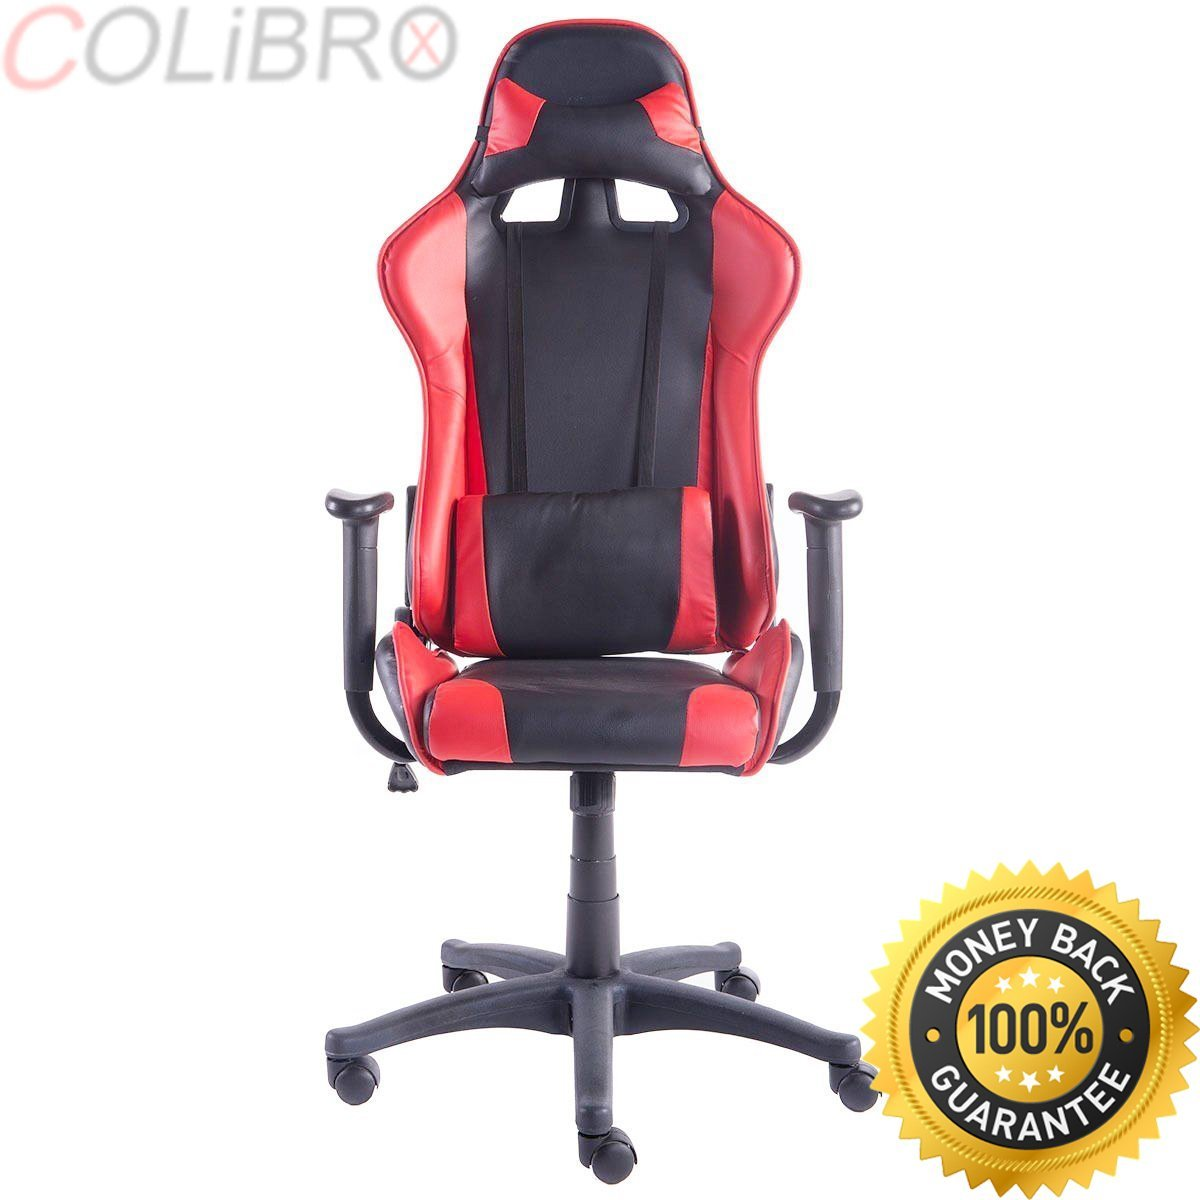 Cheap Tron Gaming Chair Find Tron Gaming Chair Deals On